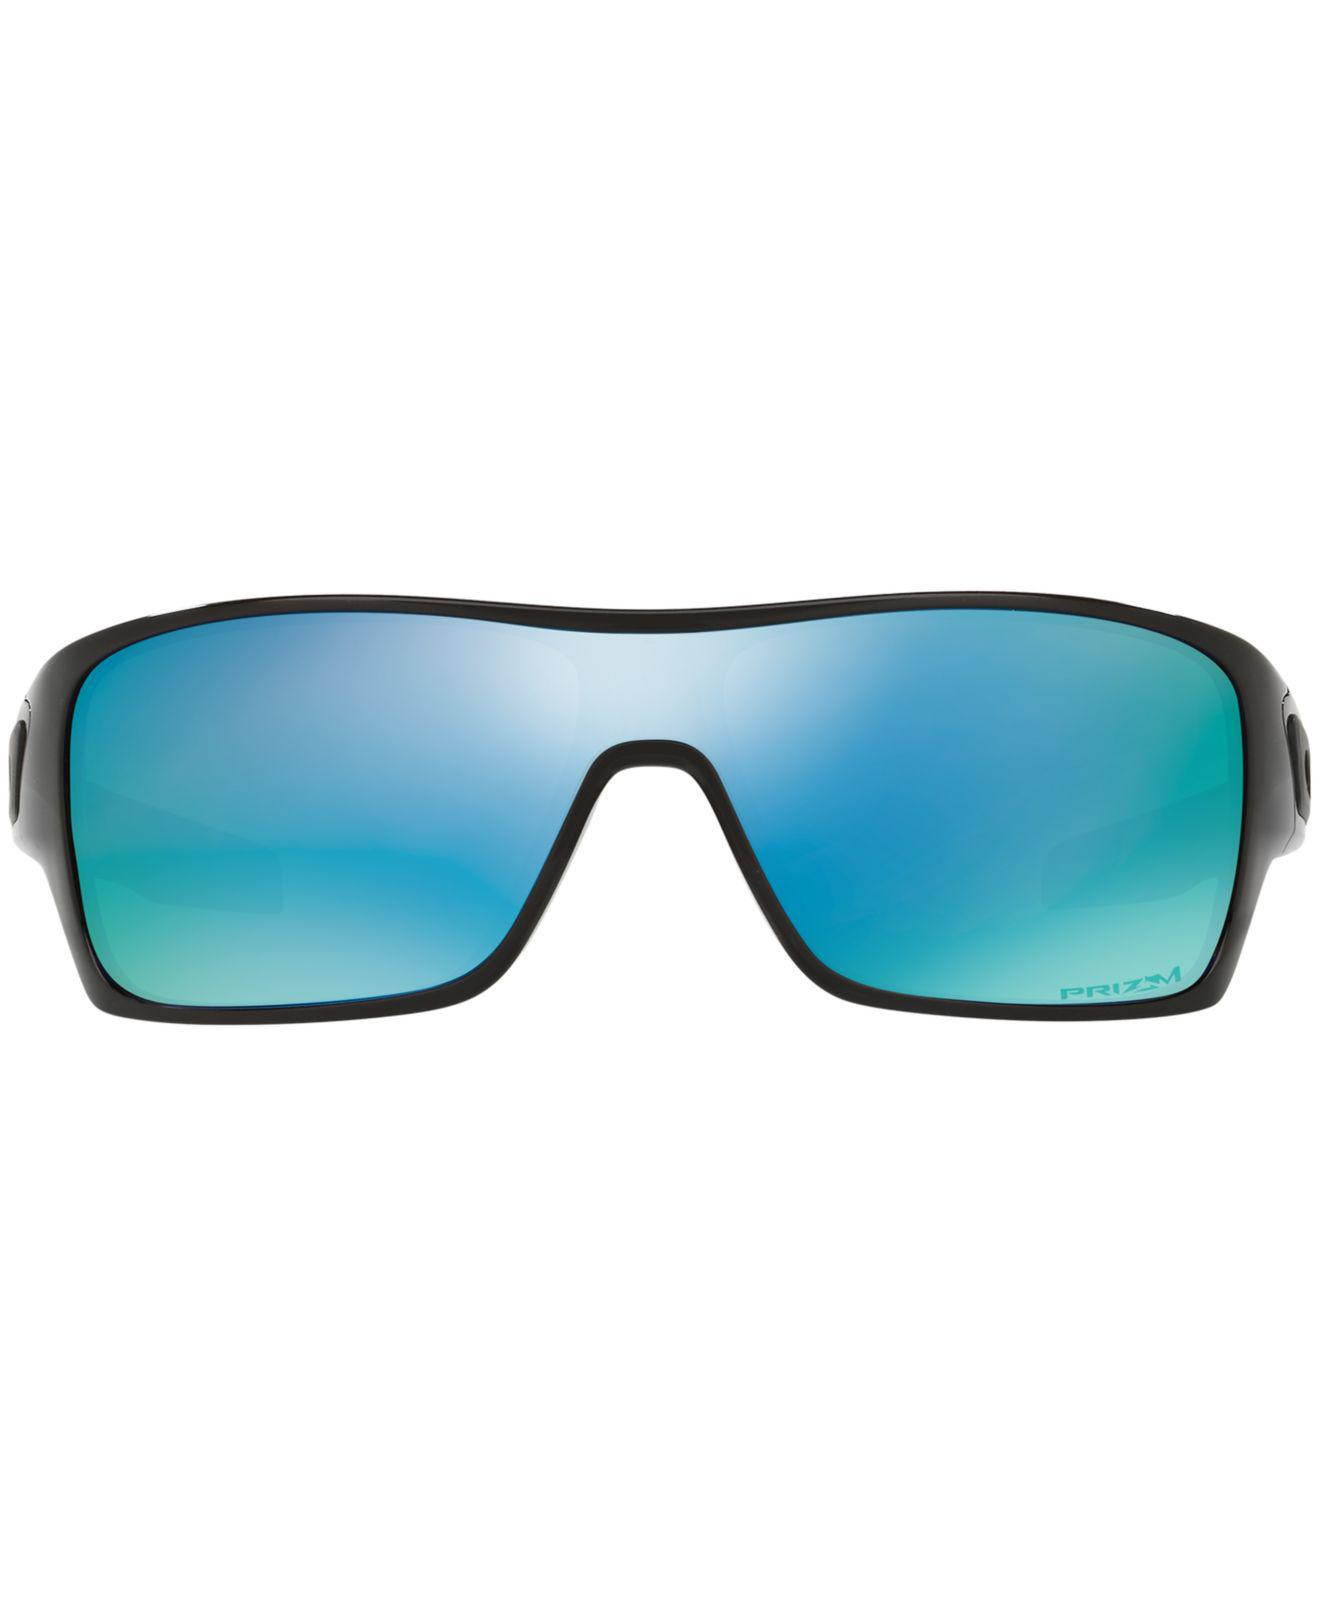 a16ee6478d Lyst - Oakley Polarized Turbine Rotor Prizm Deep Water Sunglasses ...